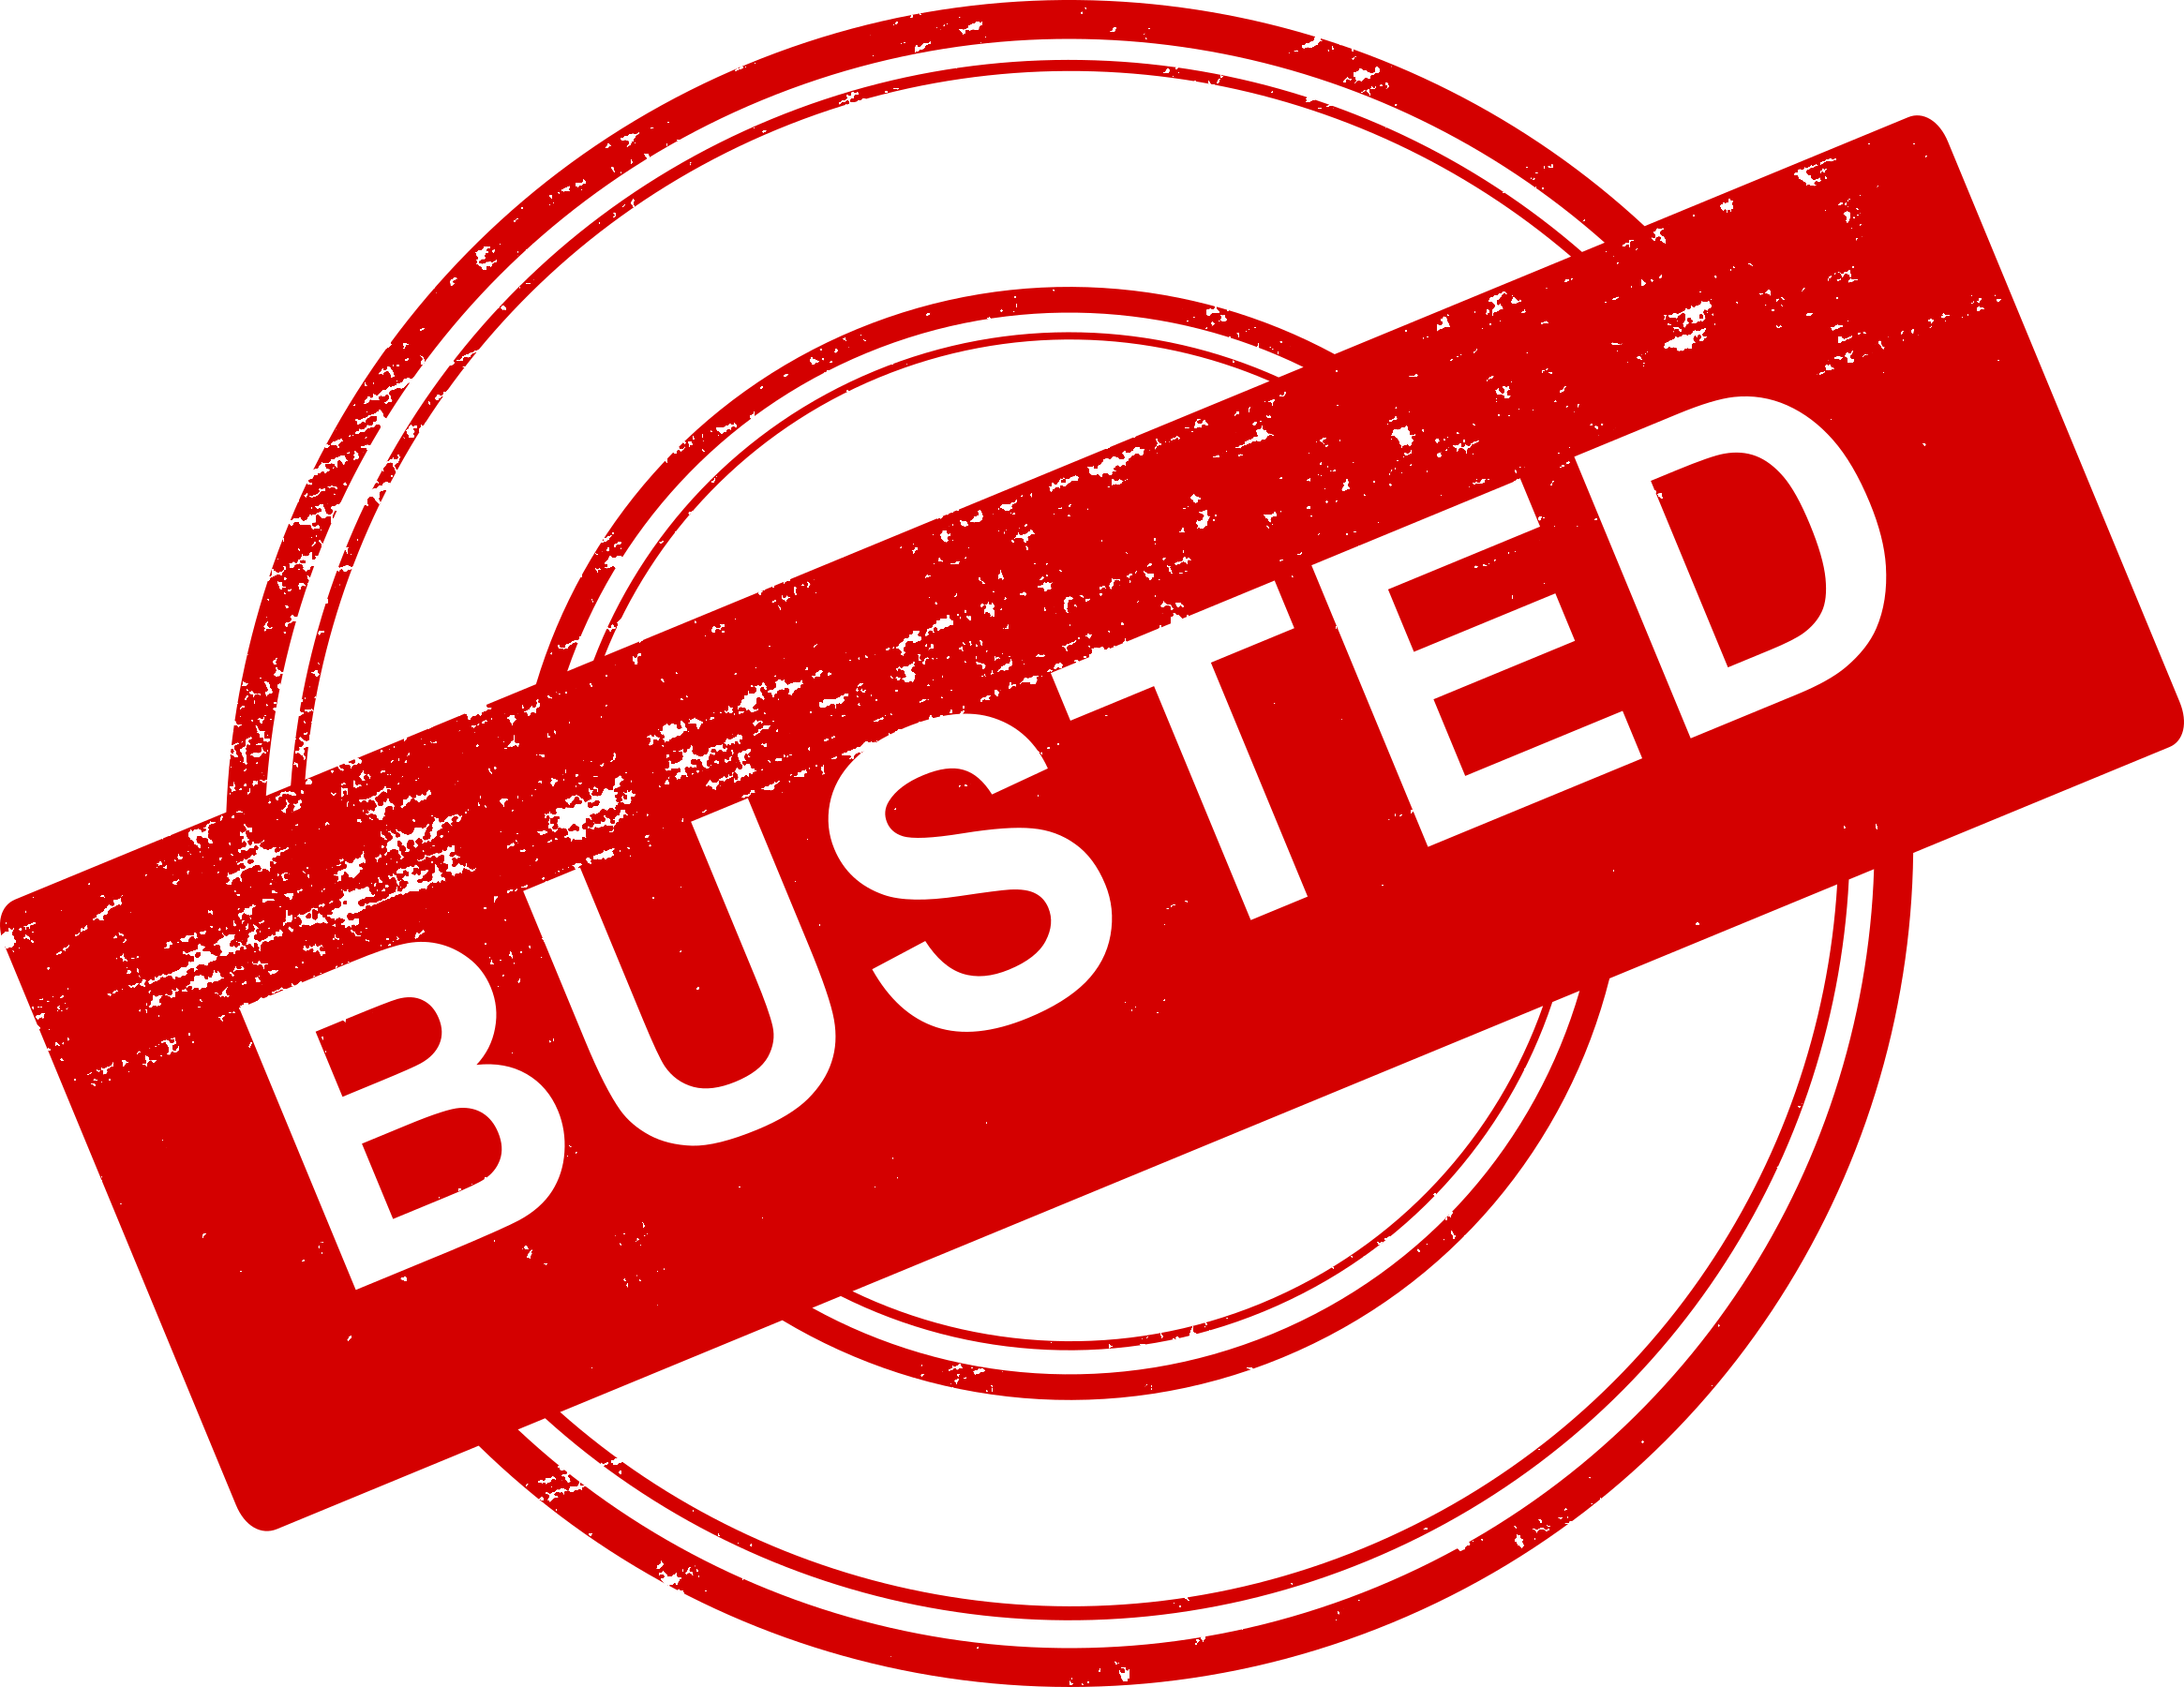 Busted (Copyright de 4 Busted Stamp (PNG Transparent) | OnlyGFX.com)